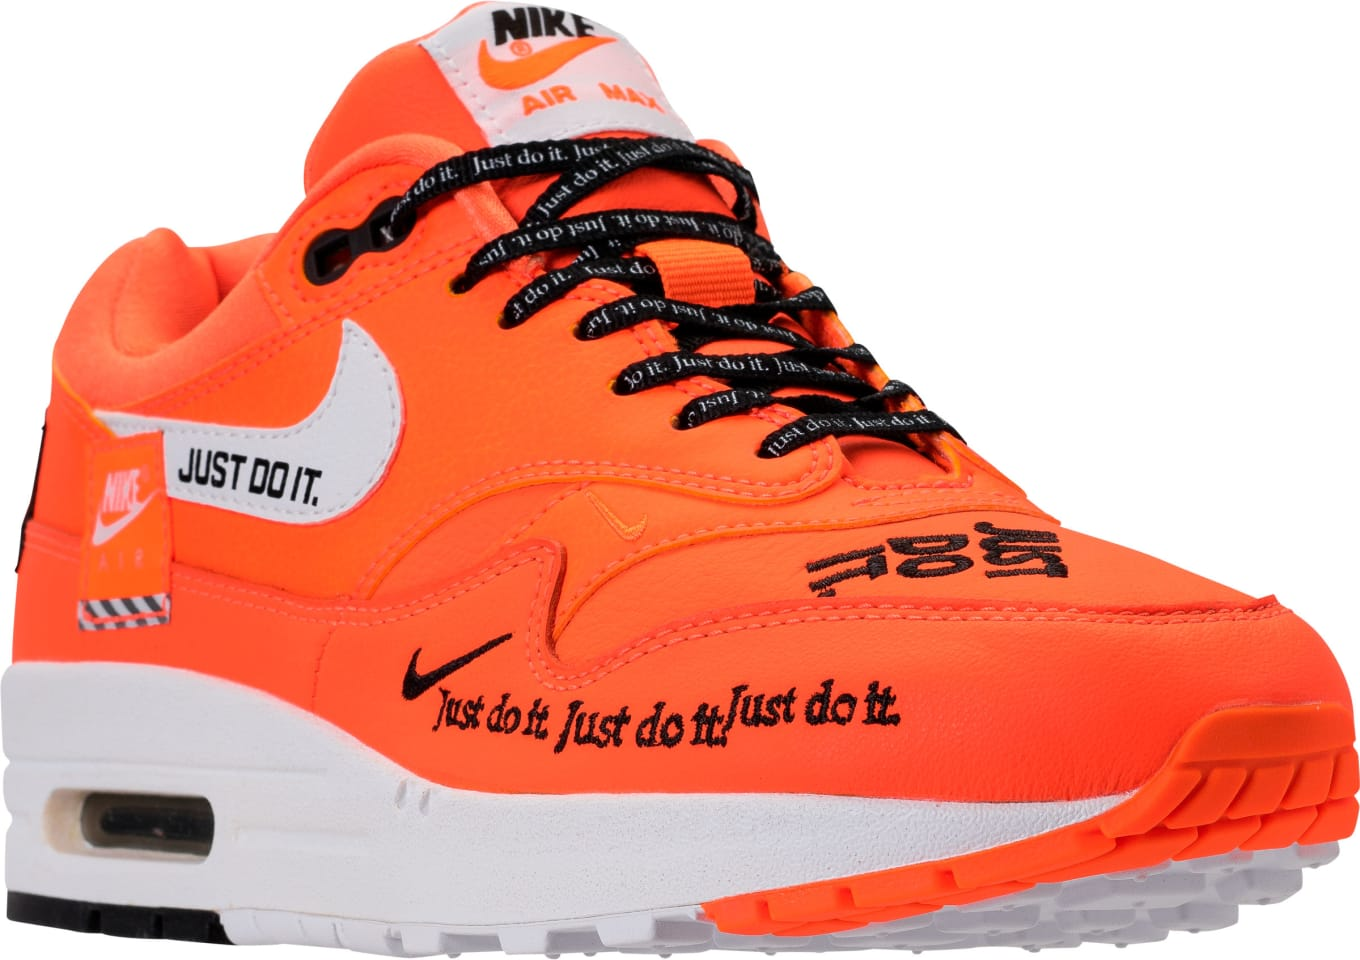 hot sale online 0b126 4d0c6 Another  Just Do It  Nike Air Max 1 Surfaces. Orange colorway will be a  women s exclusive.